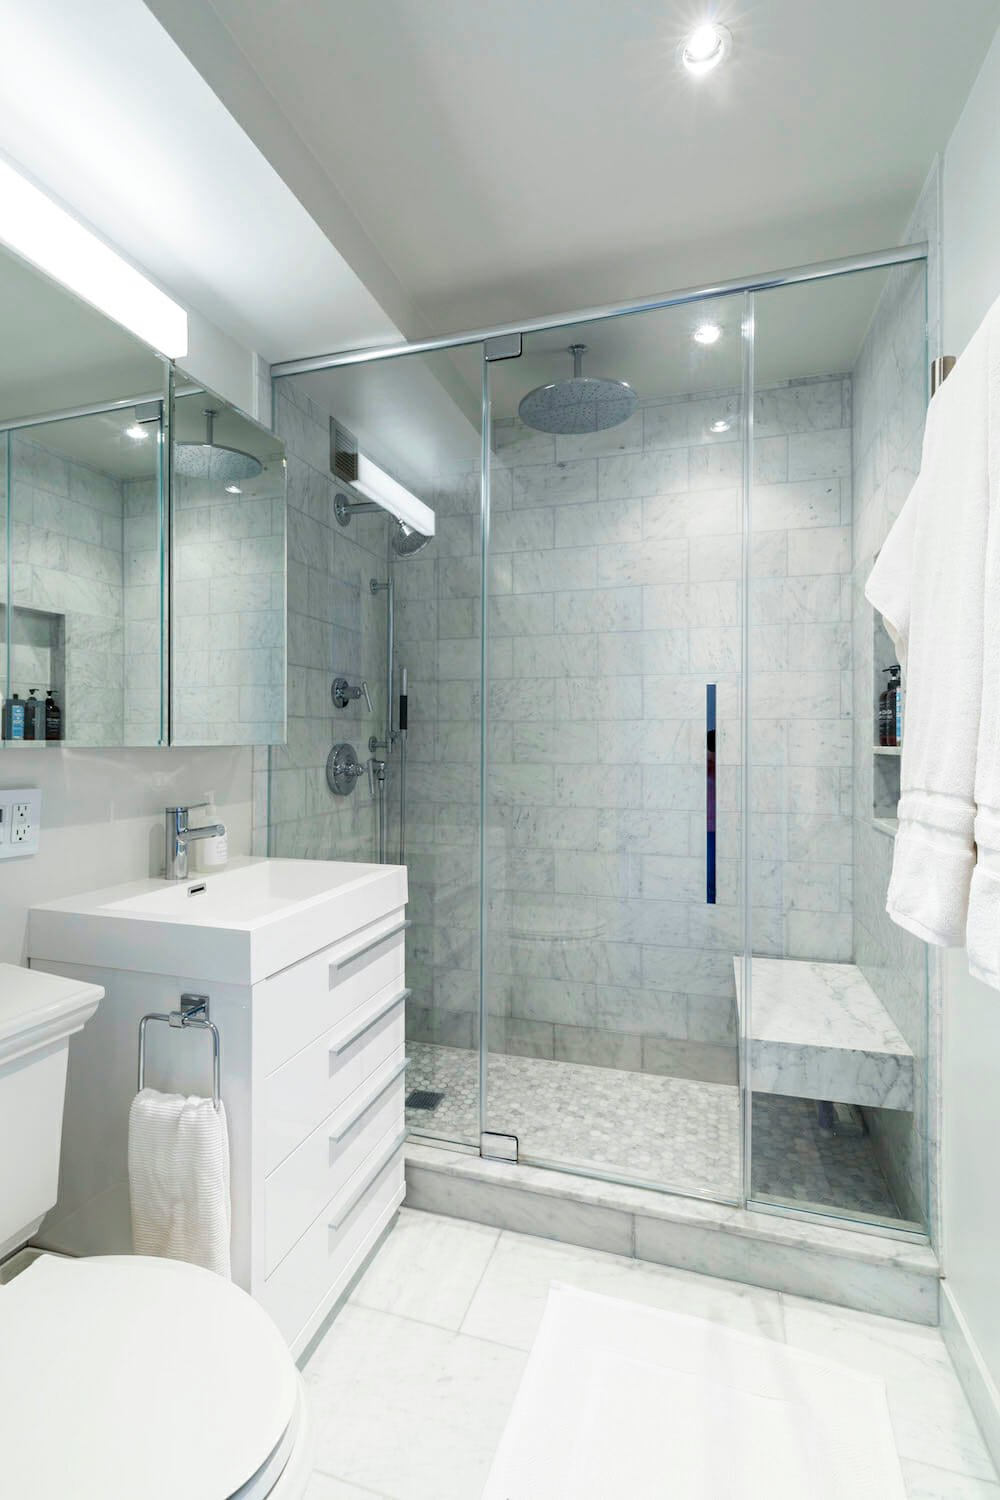 Replacing the bathtub with a glass shower opens the space and is more practical for homeowners